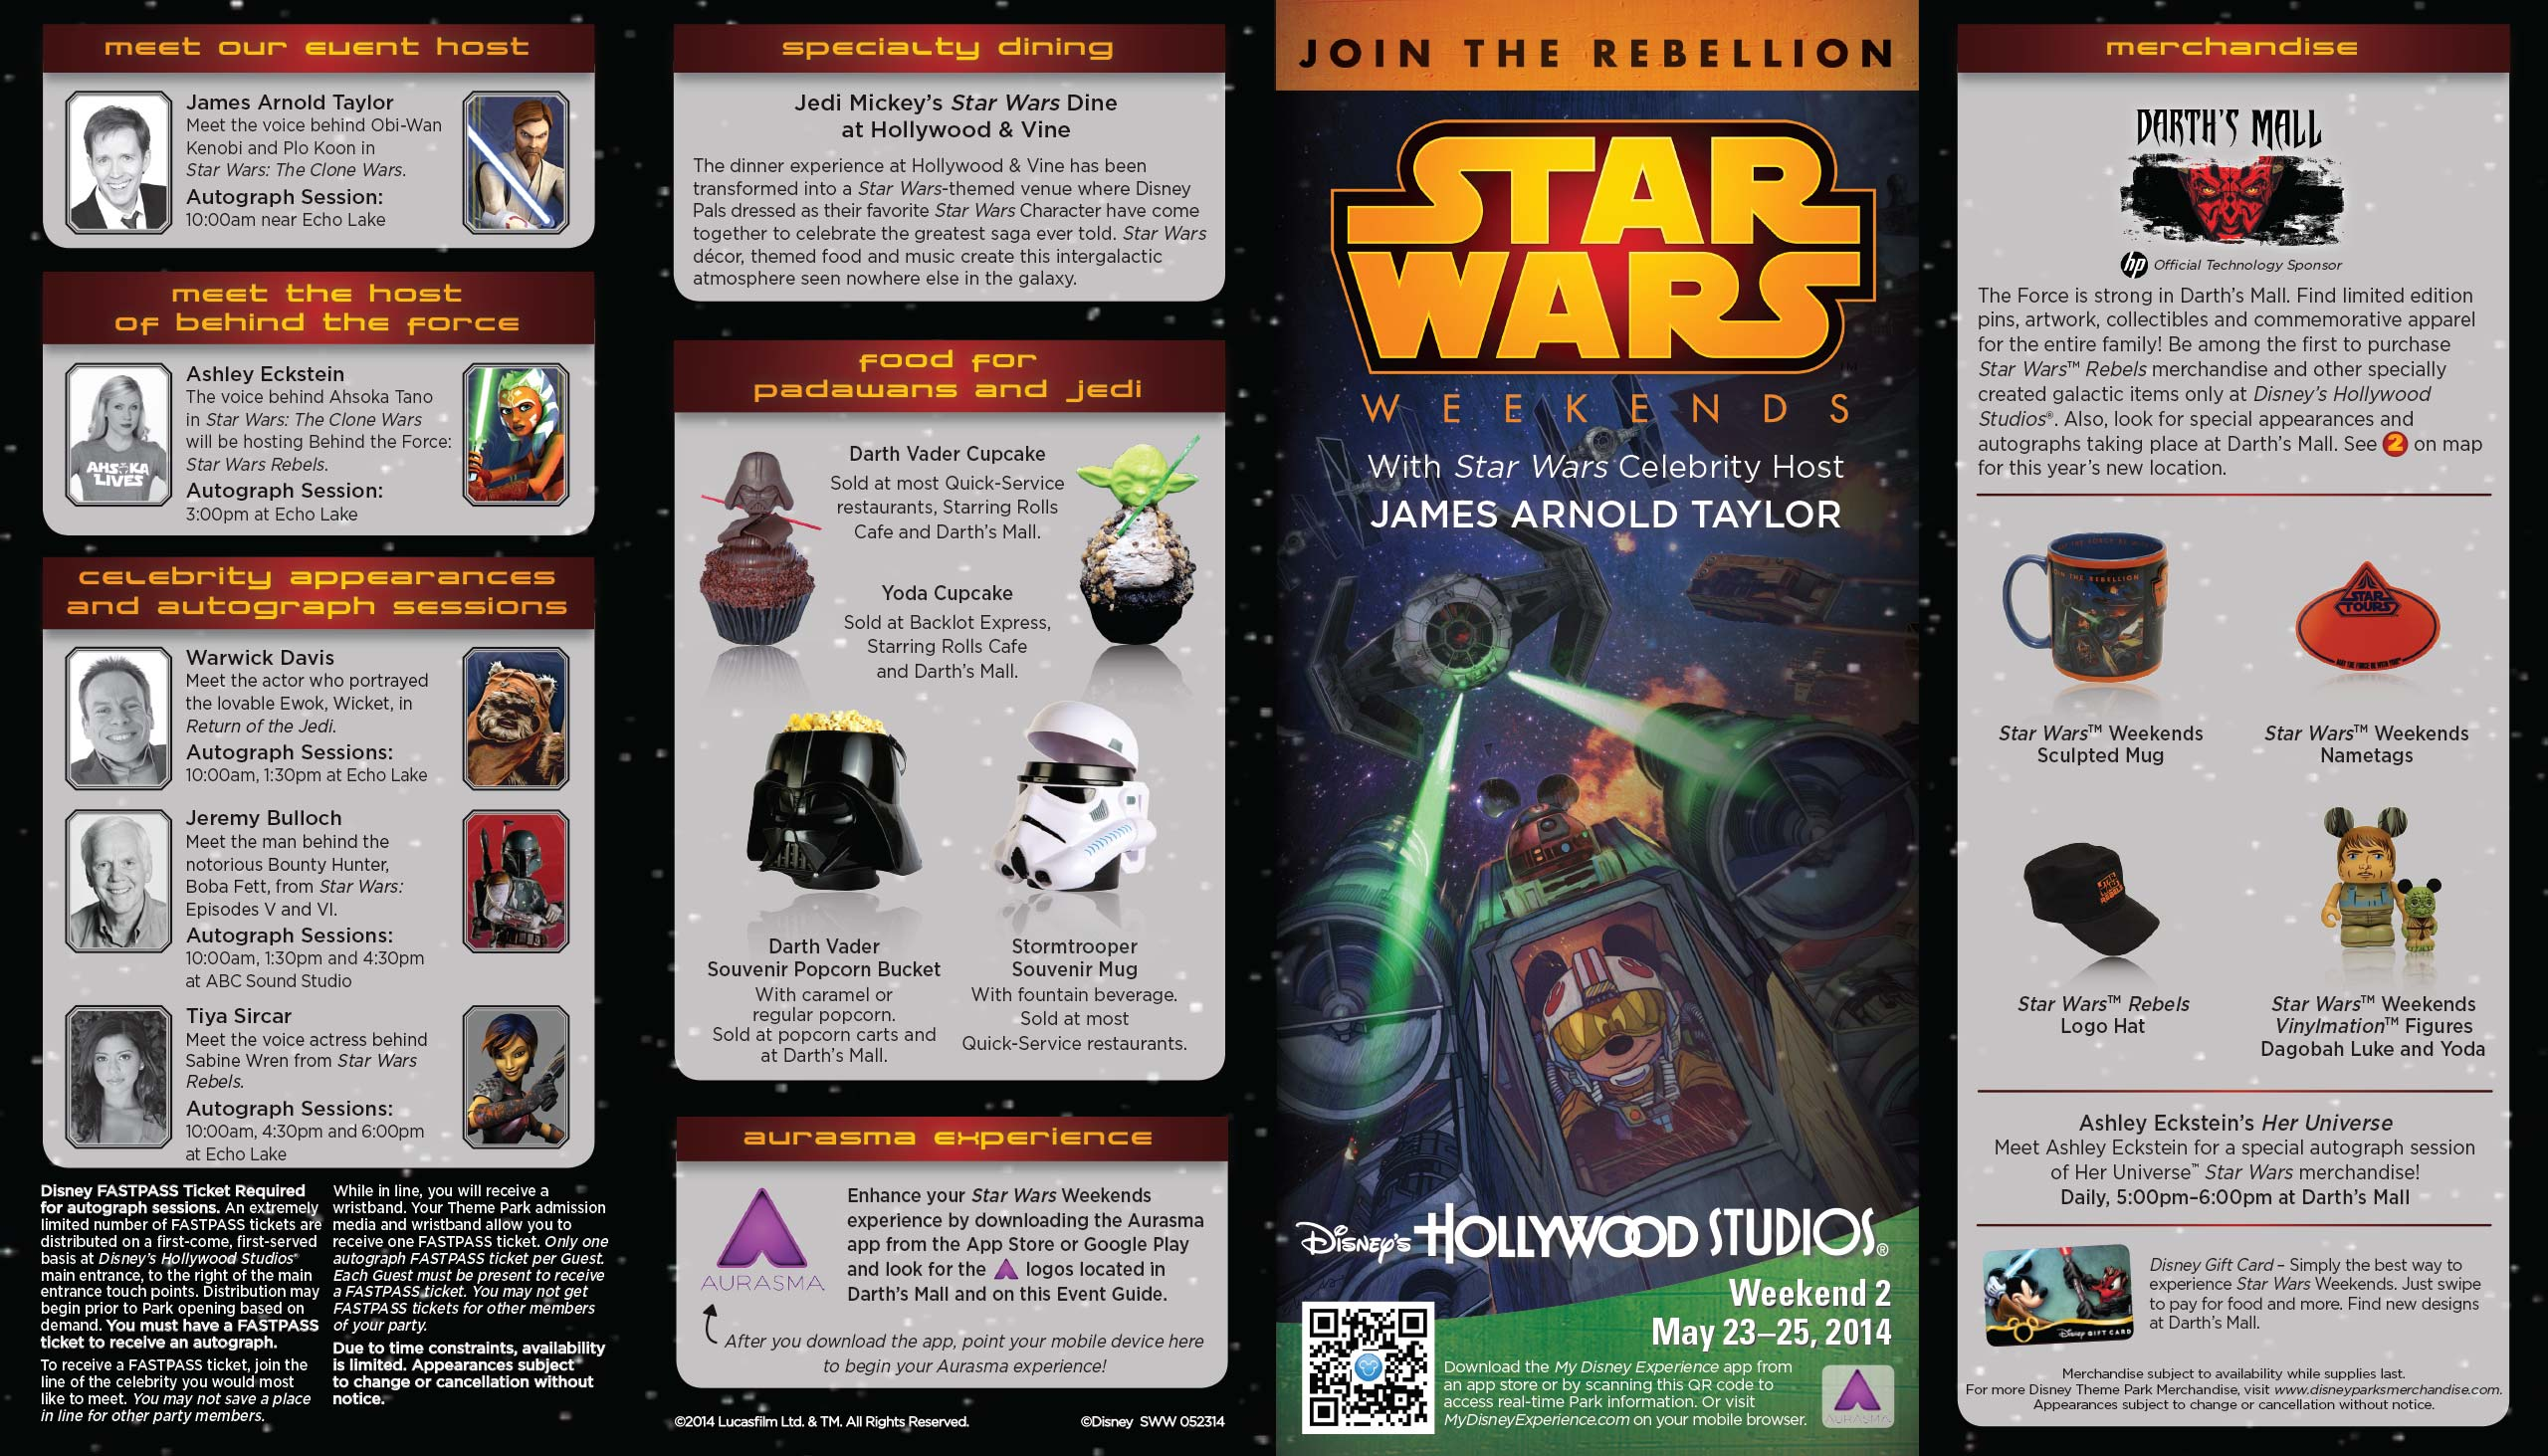 2014 Star Wars Weekends May 23 - 25 Weekend 2 guide map front